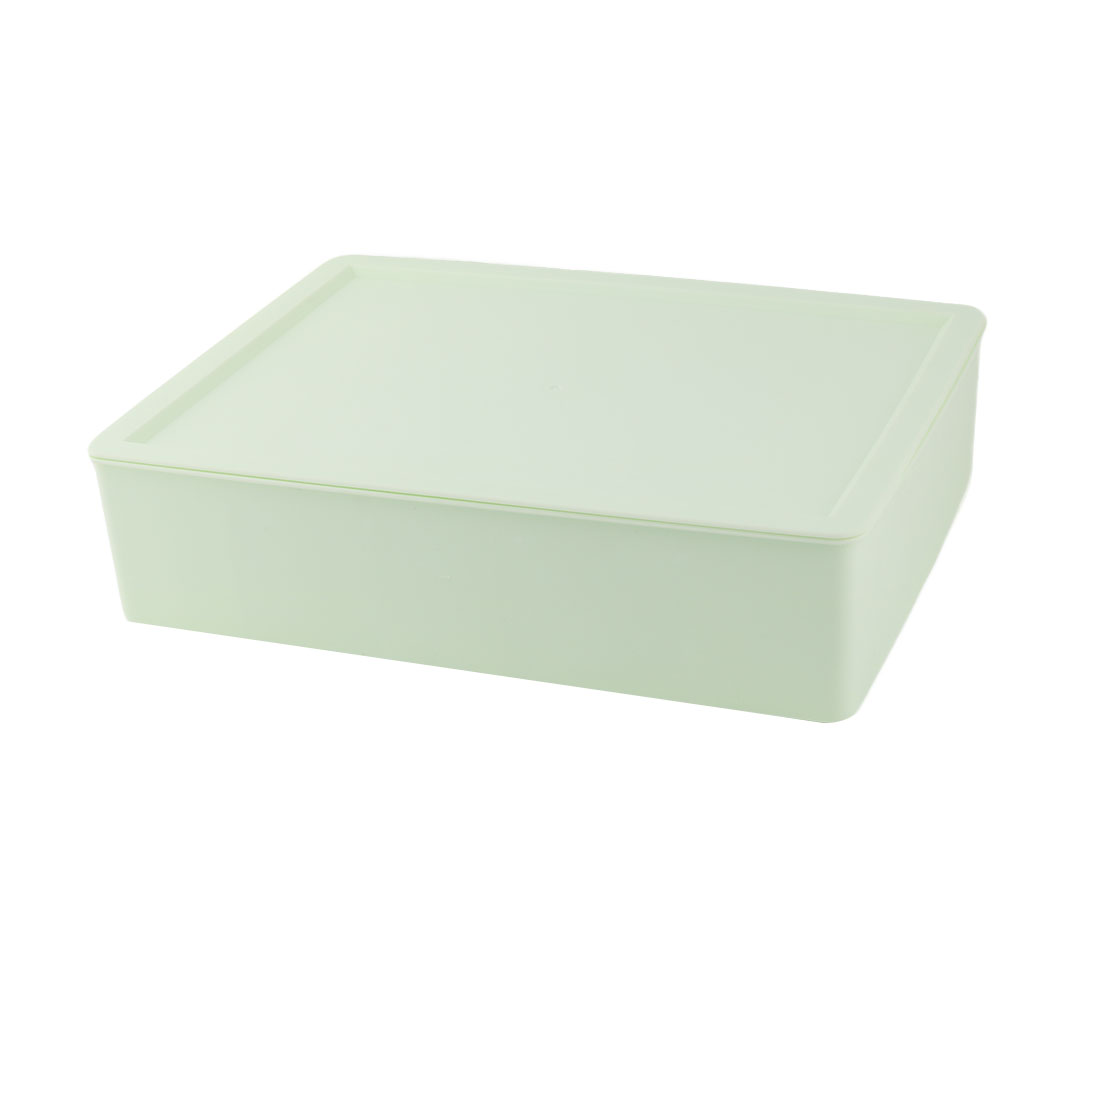 Home Plastic Rectangle 15 Compartments Underwear Socks Storage Box Case Pale Green